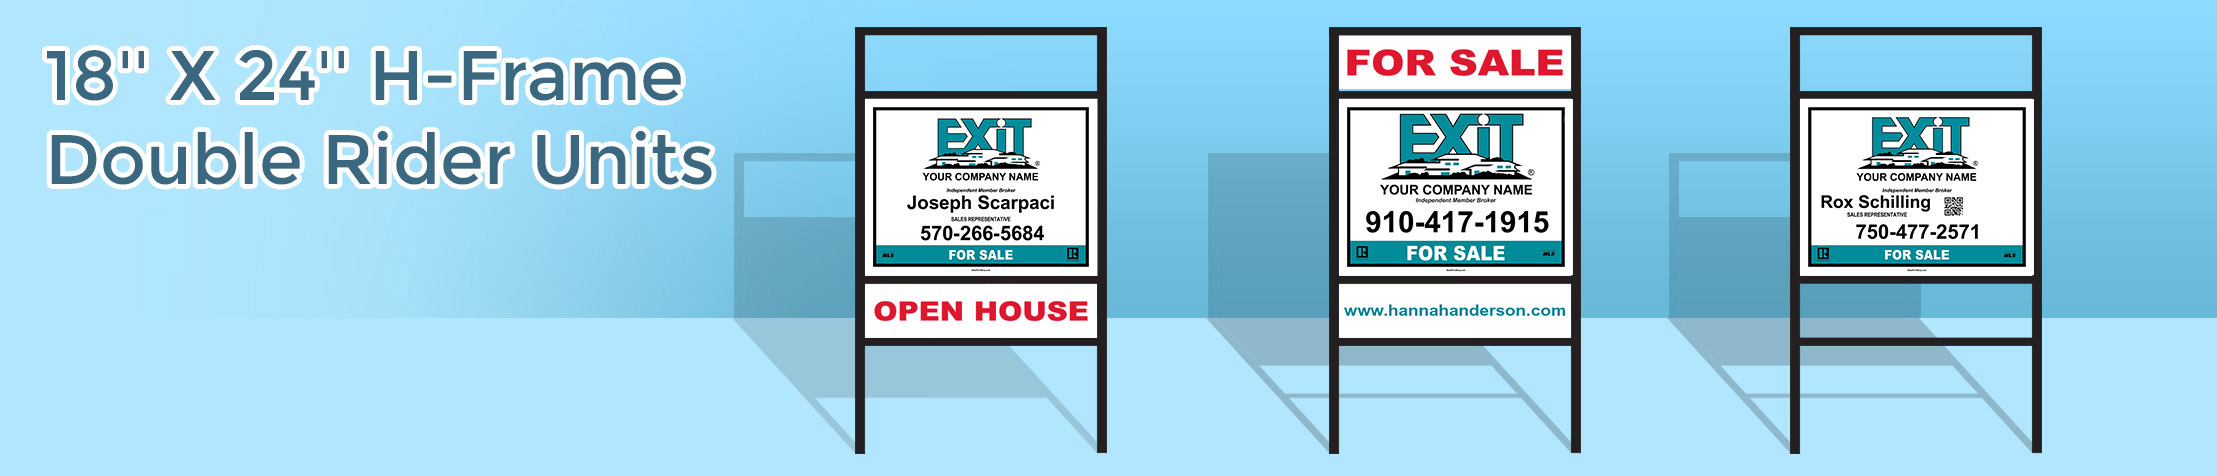 Exit Realty 18